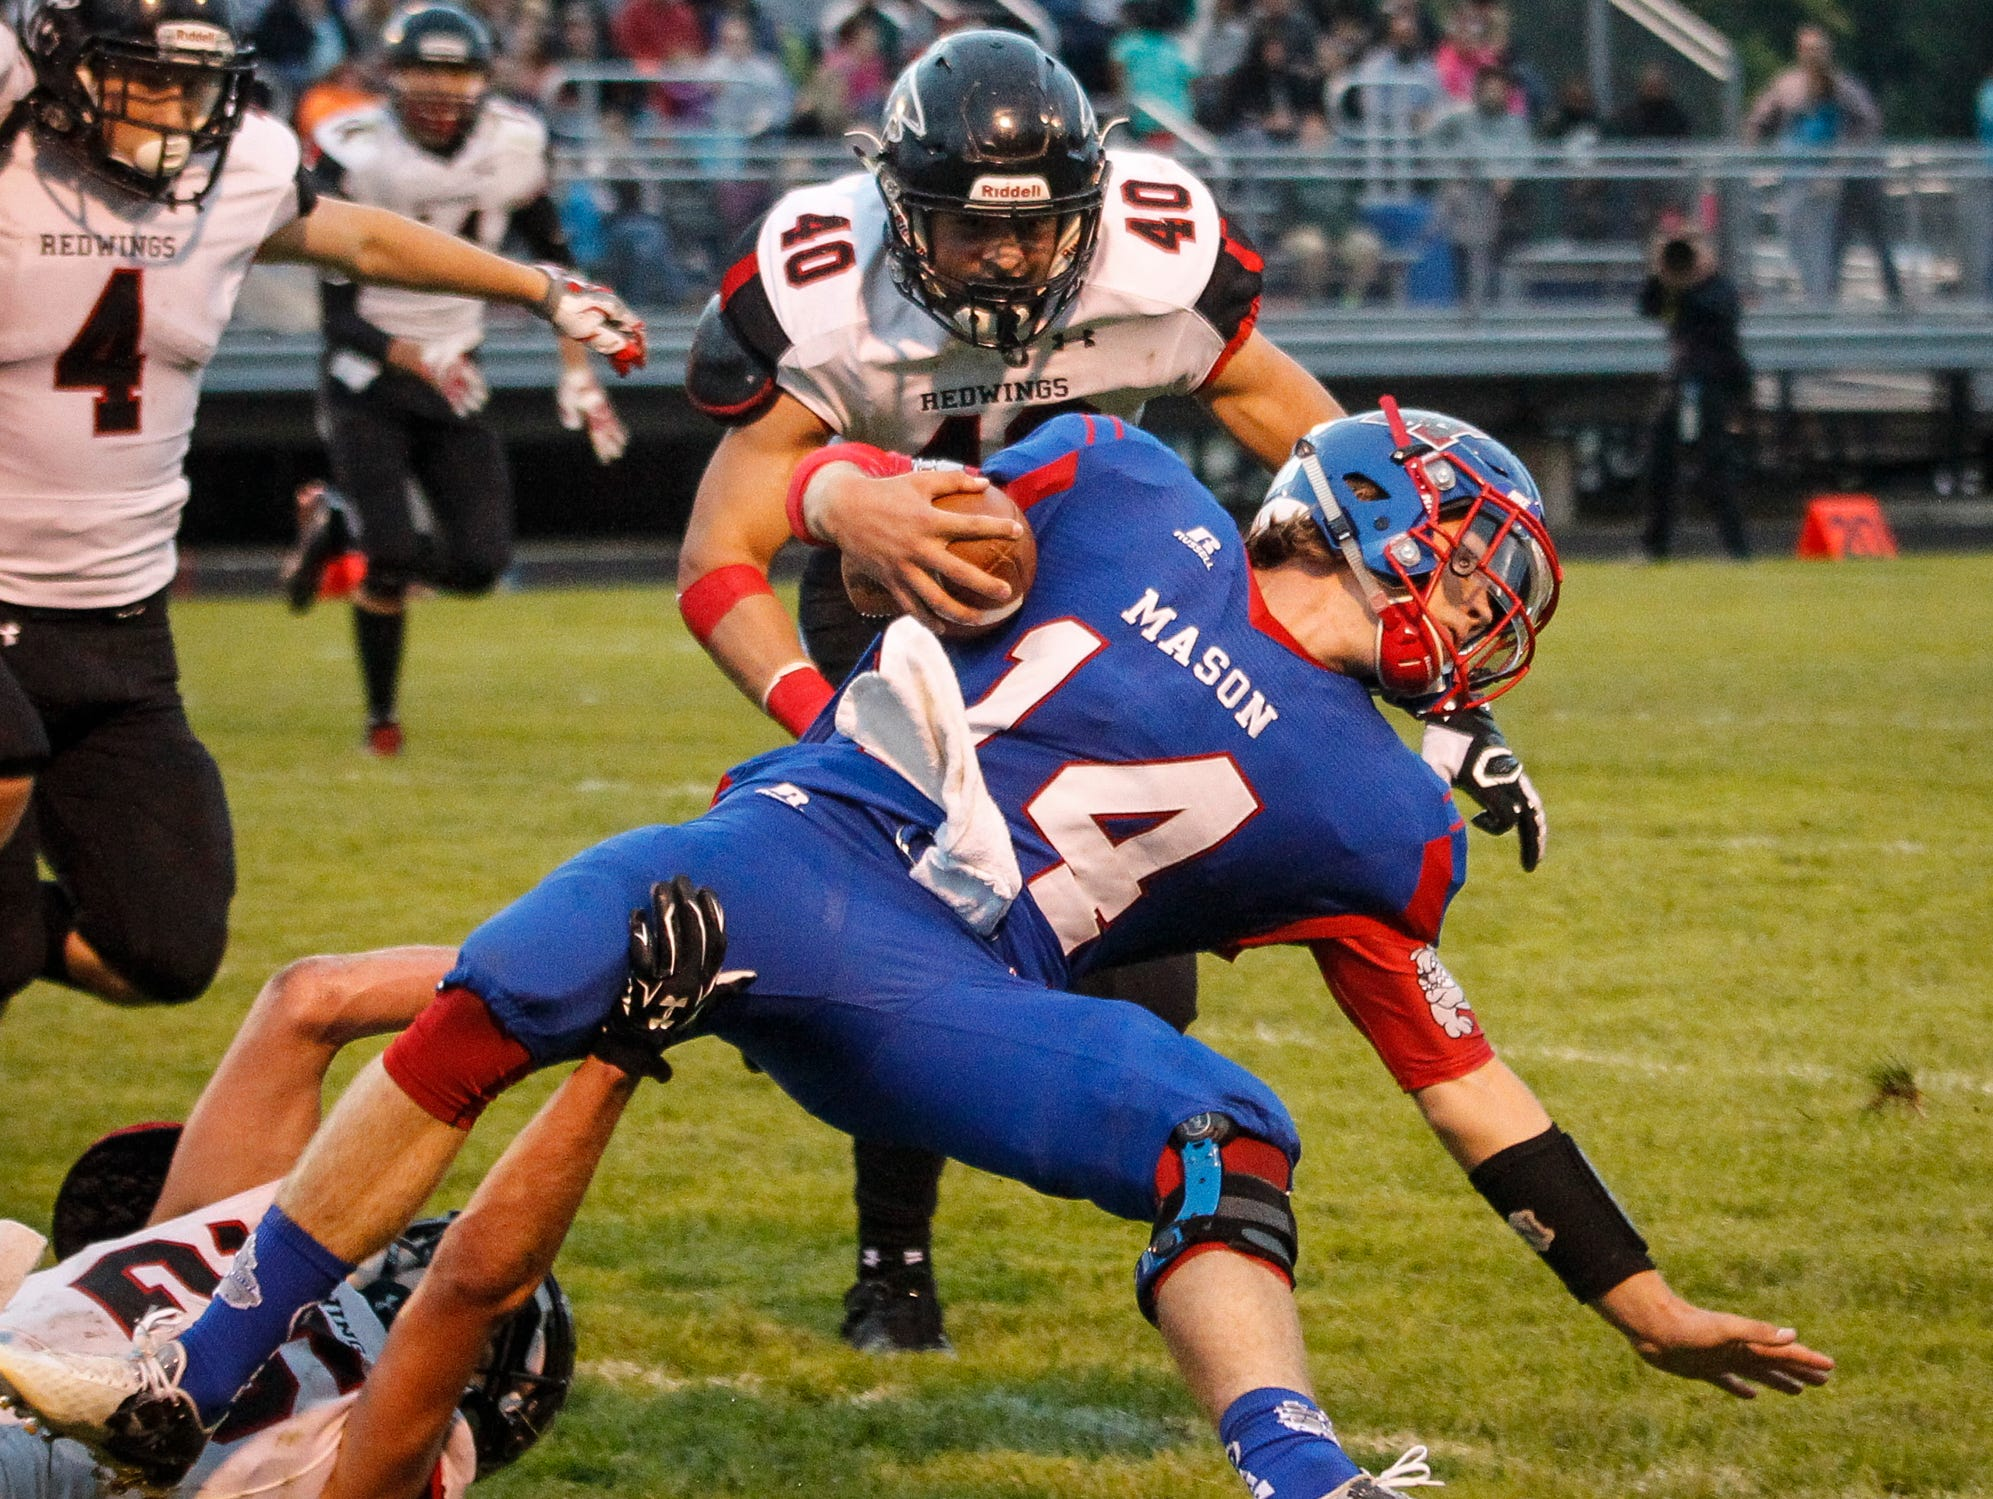 Tanner Motz (40) tackles Mason's Jarrett VanHavel during a game last fall. The St. Johns linebacker recently verbally committed to Western Michigan.